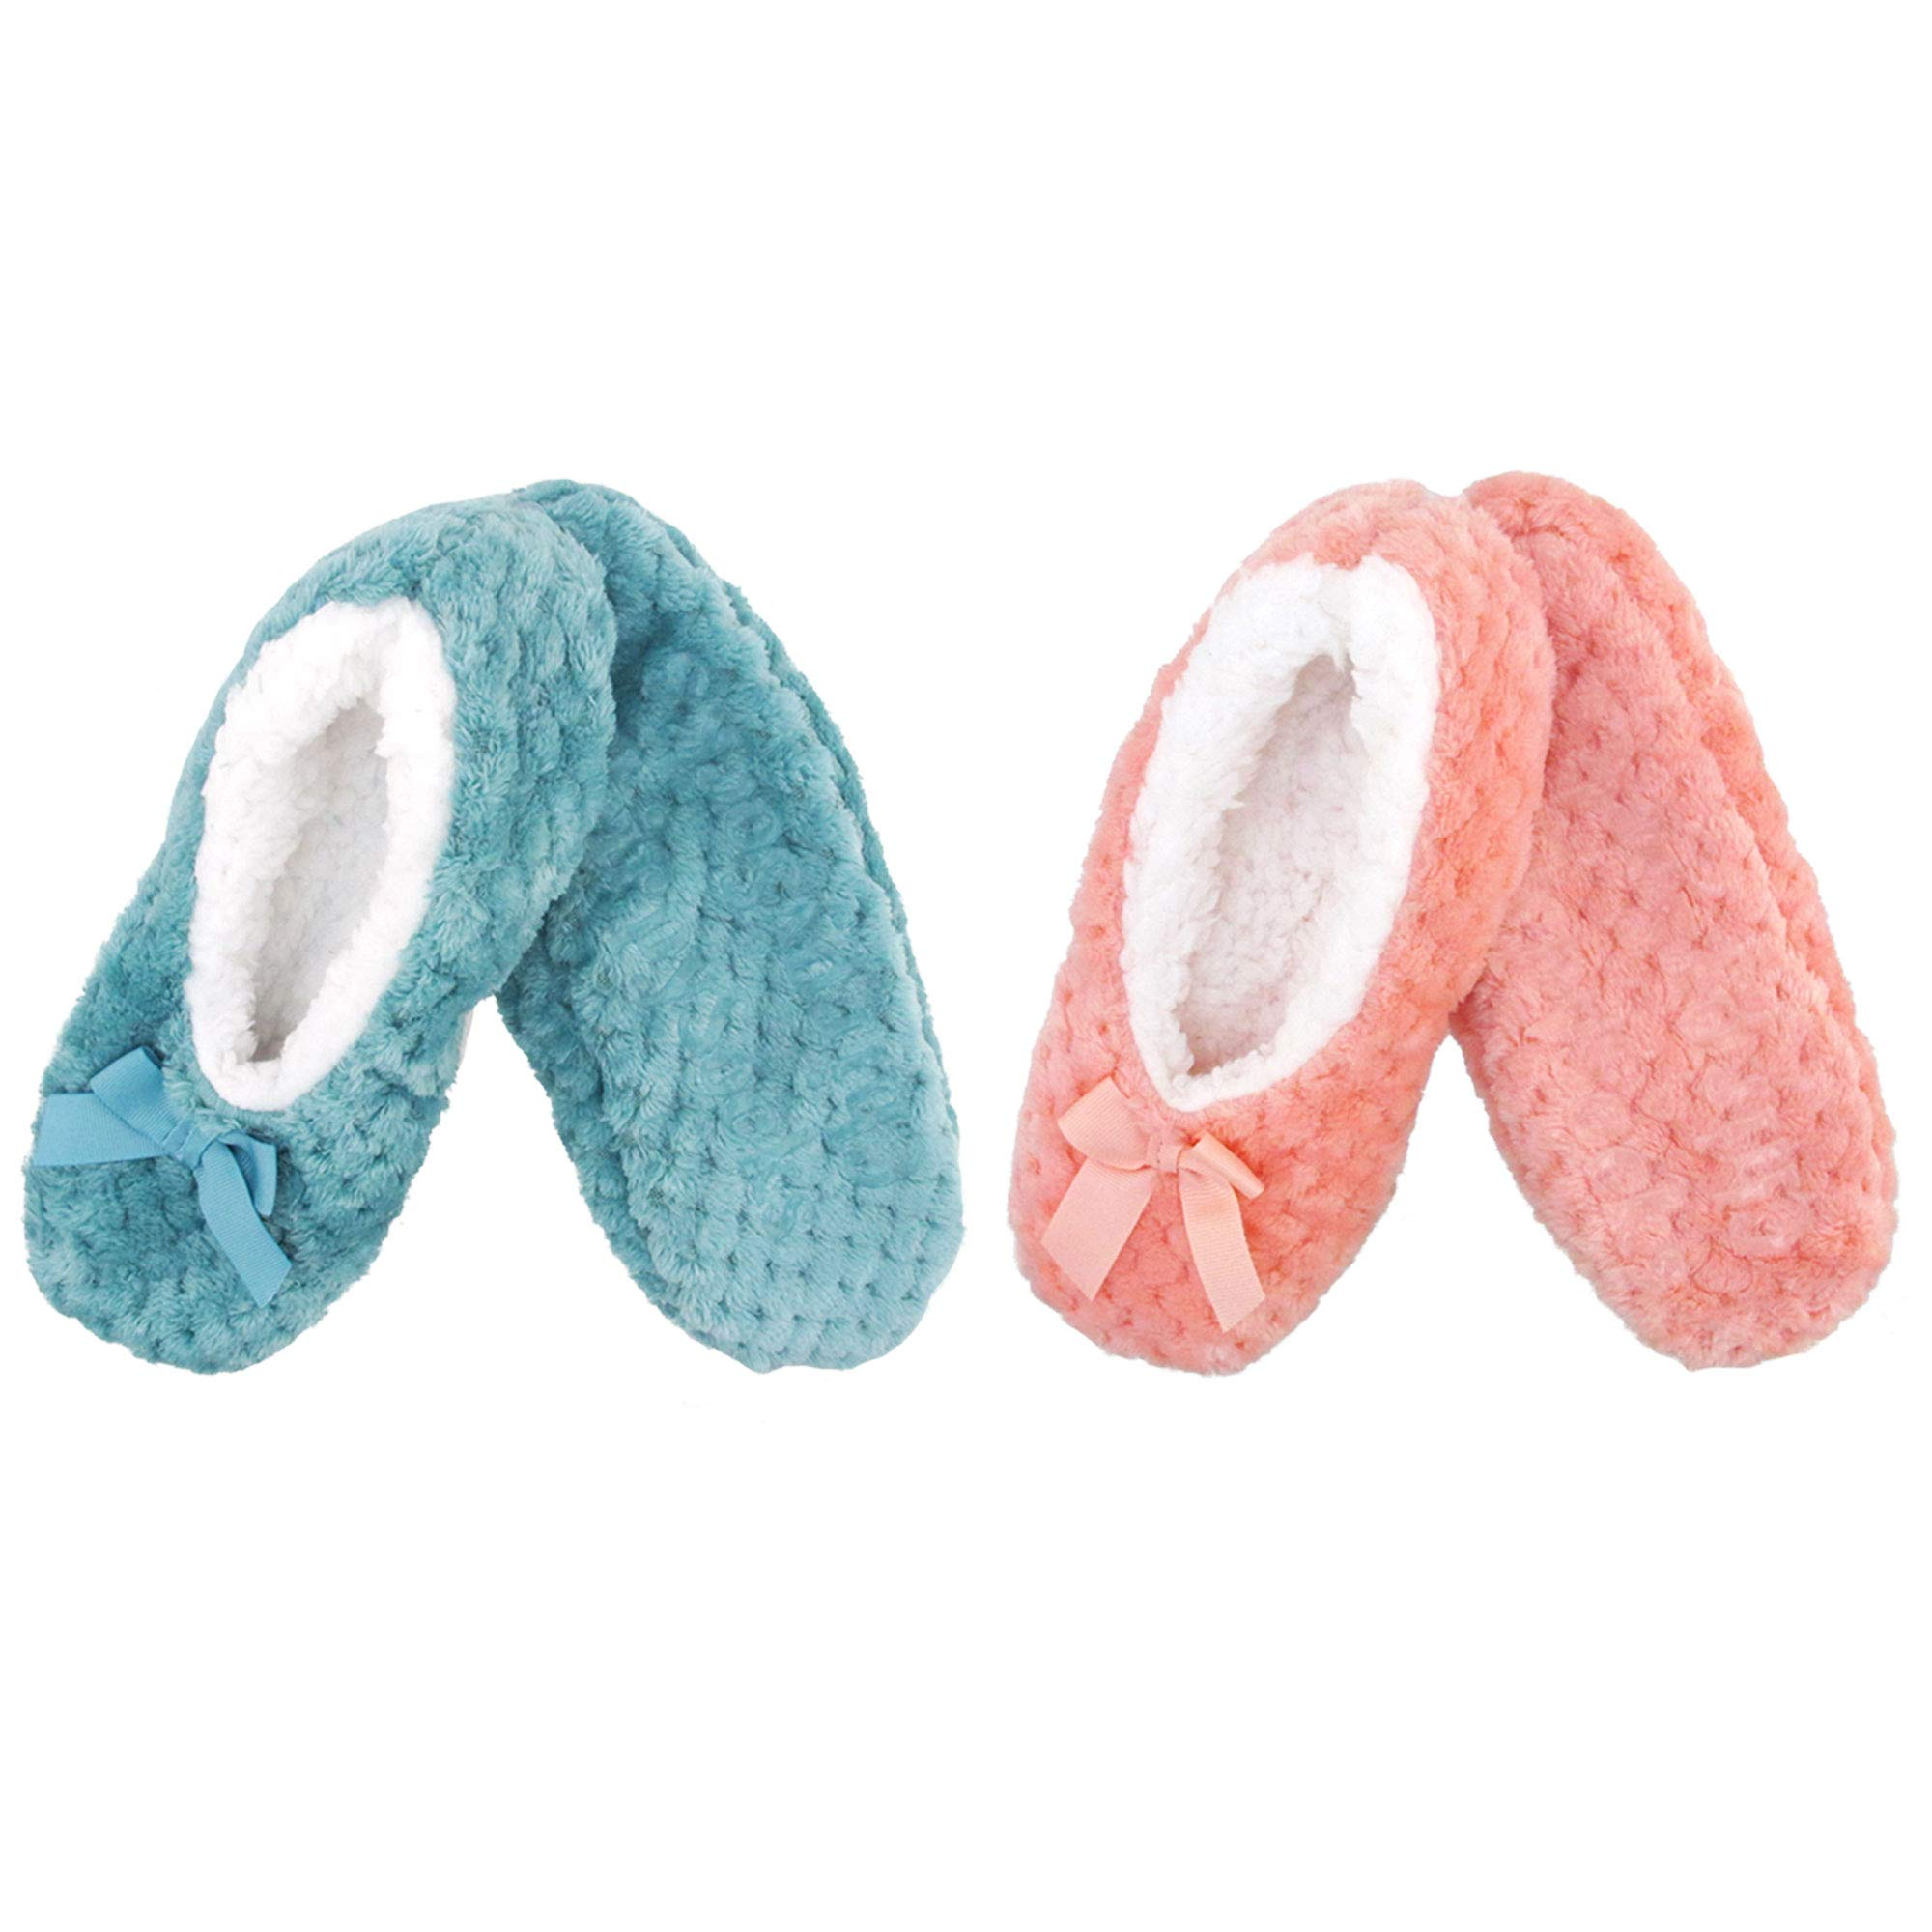 Adult Super Soft Warm Cozy Fuzzy Soft Touch Slippers Non-Slip Lined Socks, Assortment F, Medium 2 Pairs